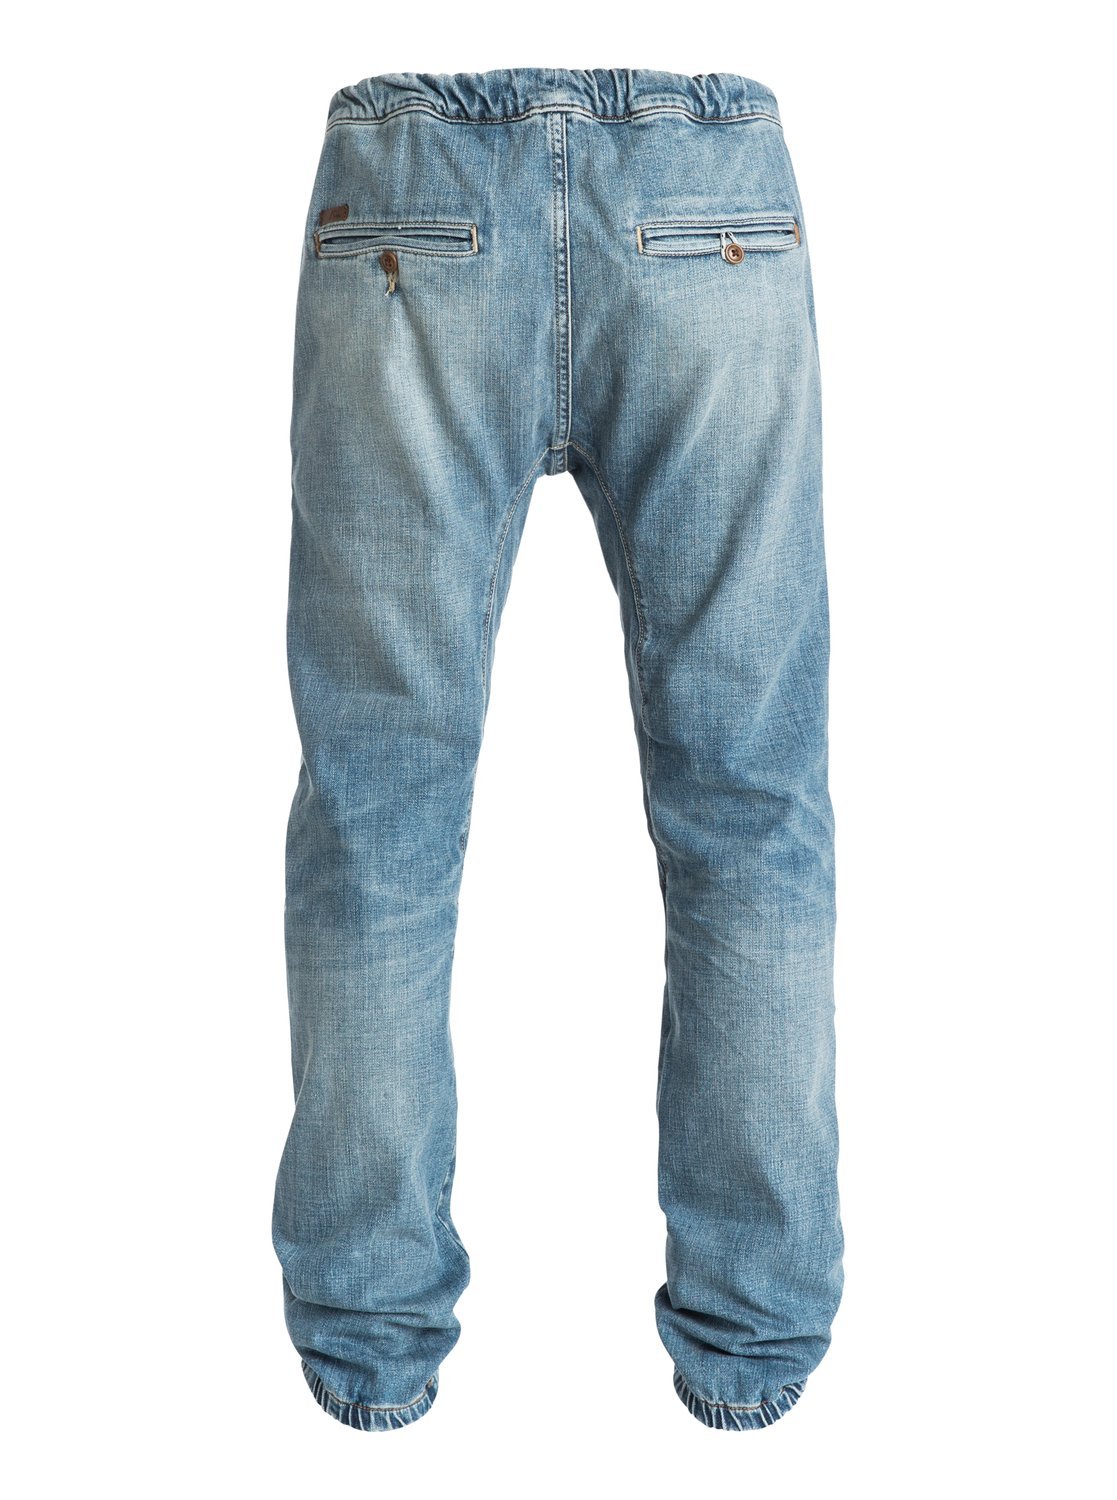 Find great deals on eBay for joggers jeans. Shop with confidence.